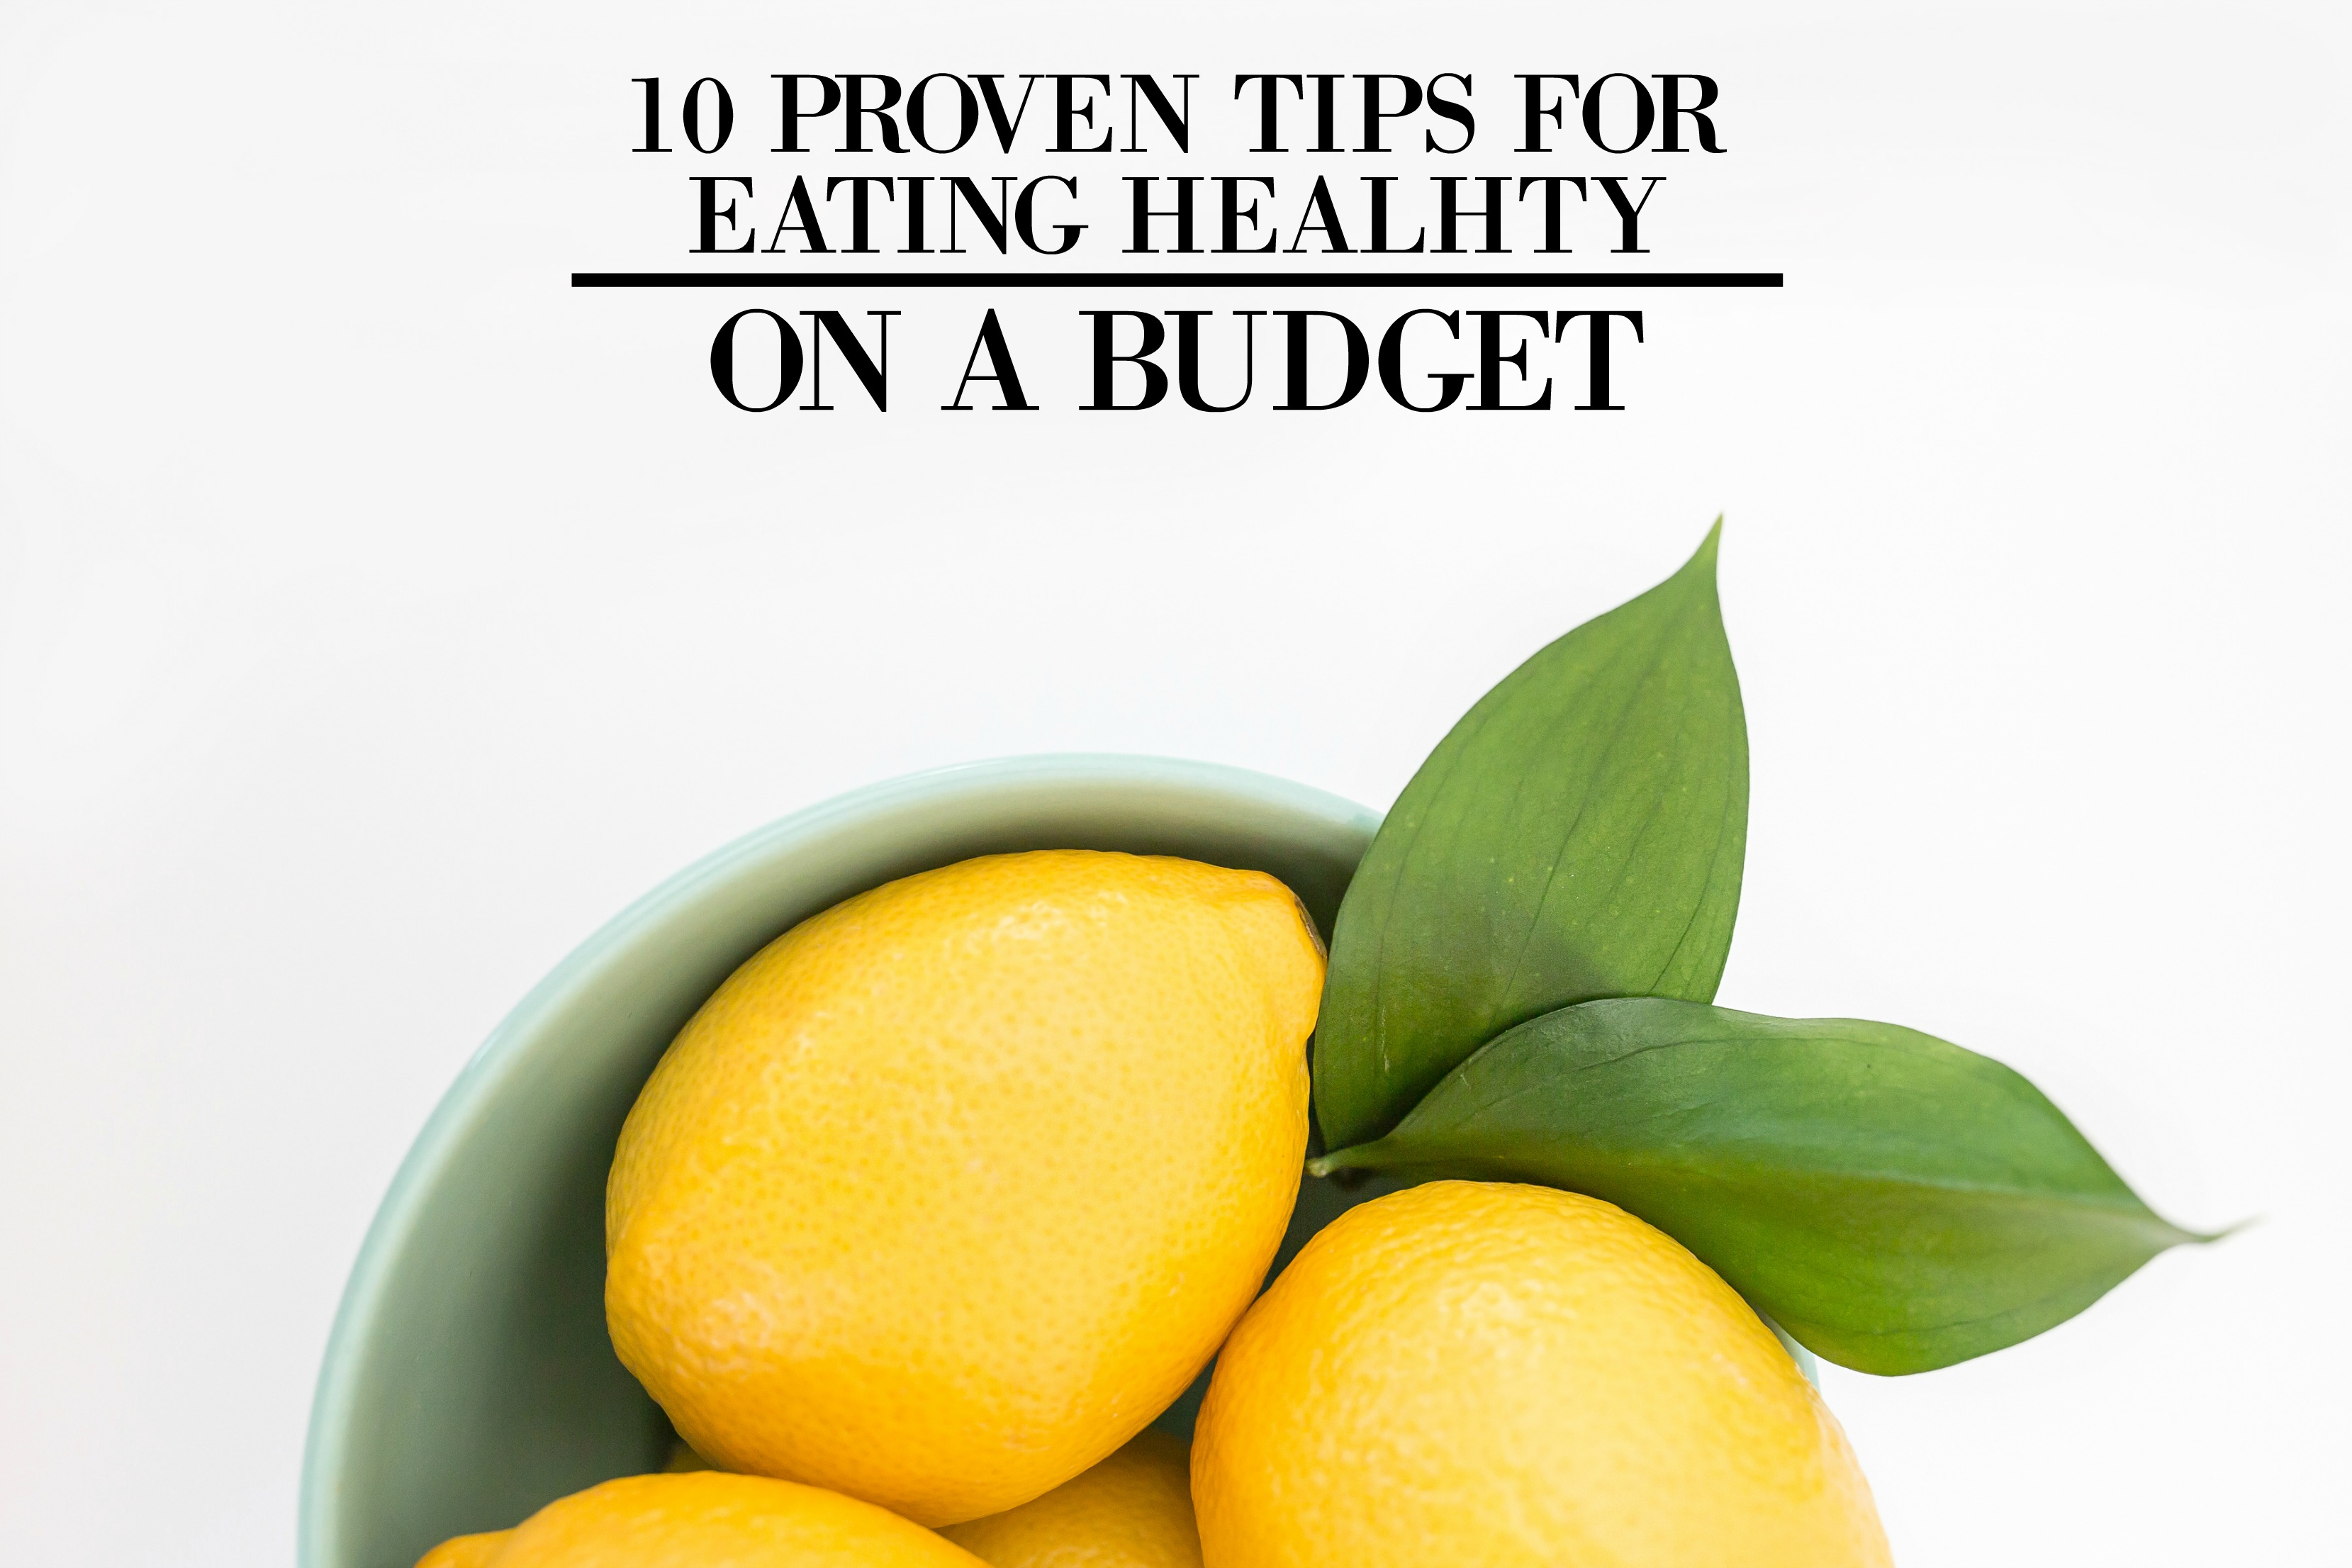 Watch 10 Tips For Eating Healthy On A Budget video